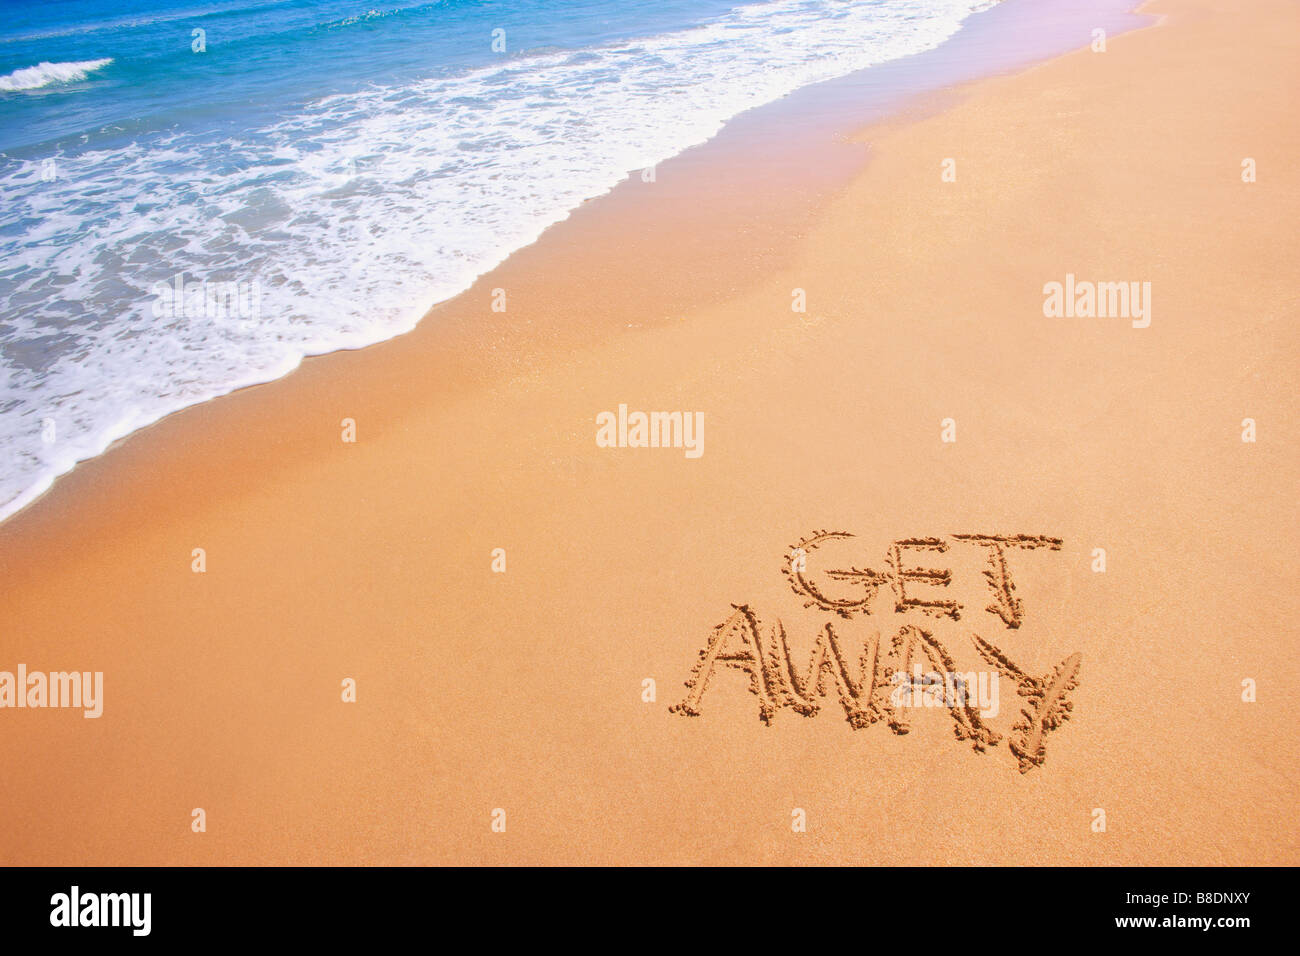 Get away written in the sand - Stock Image